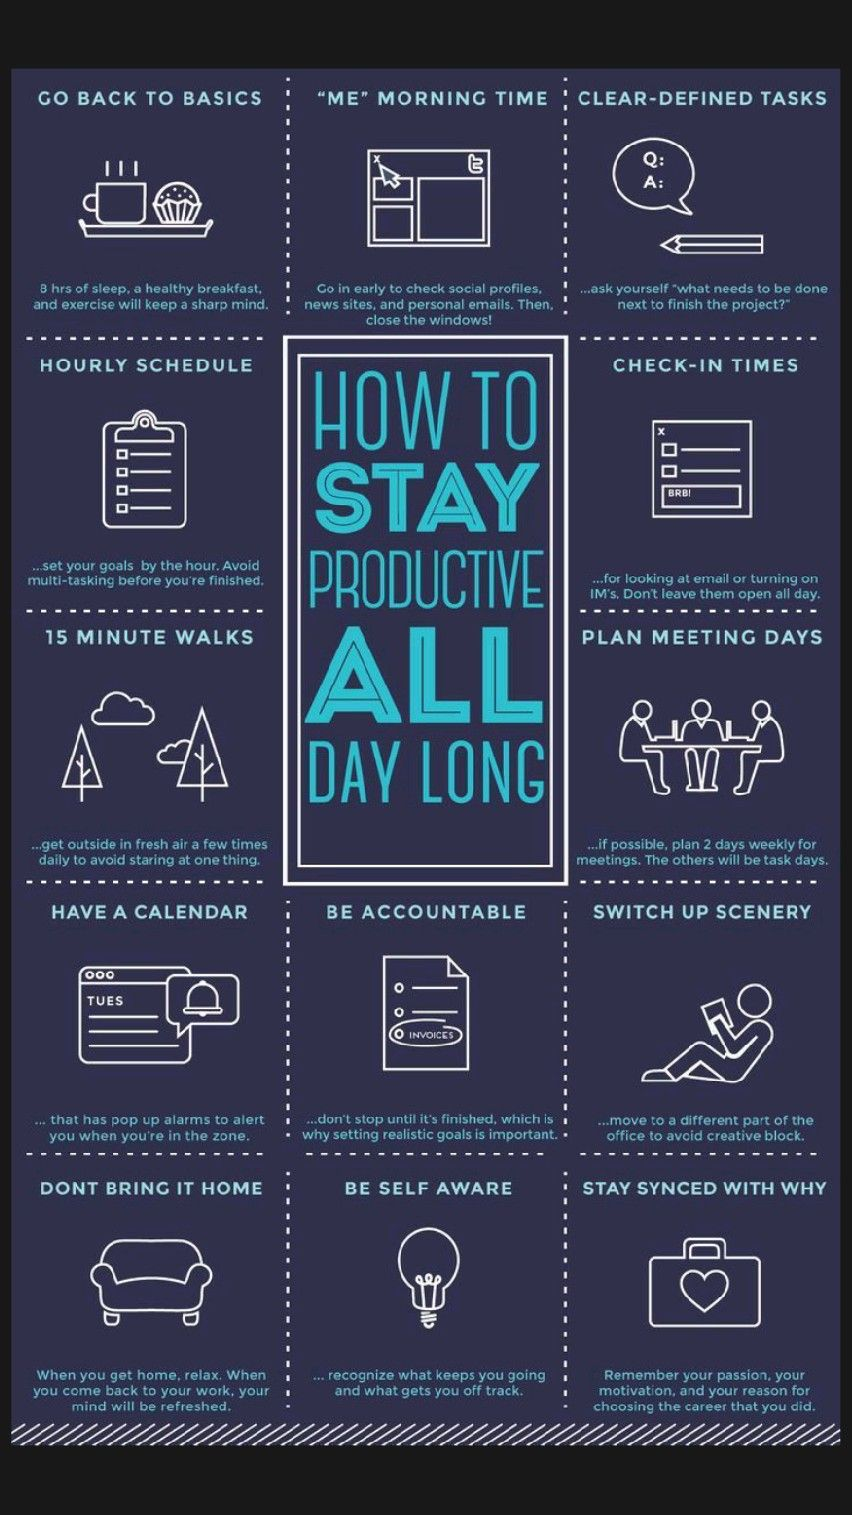 Stay productive all the day